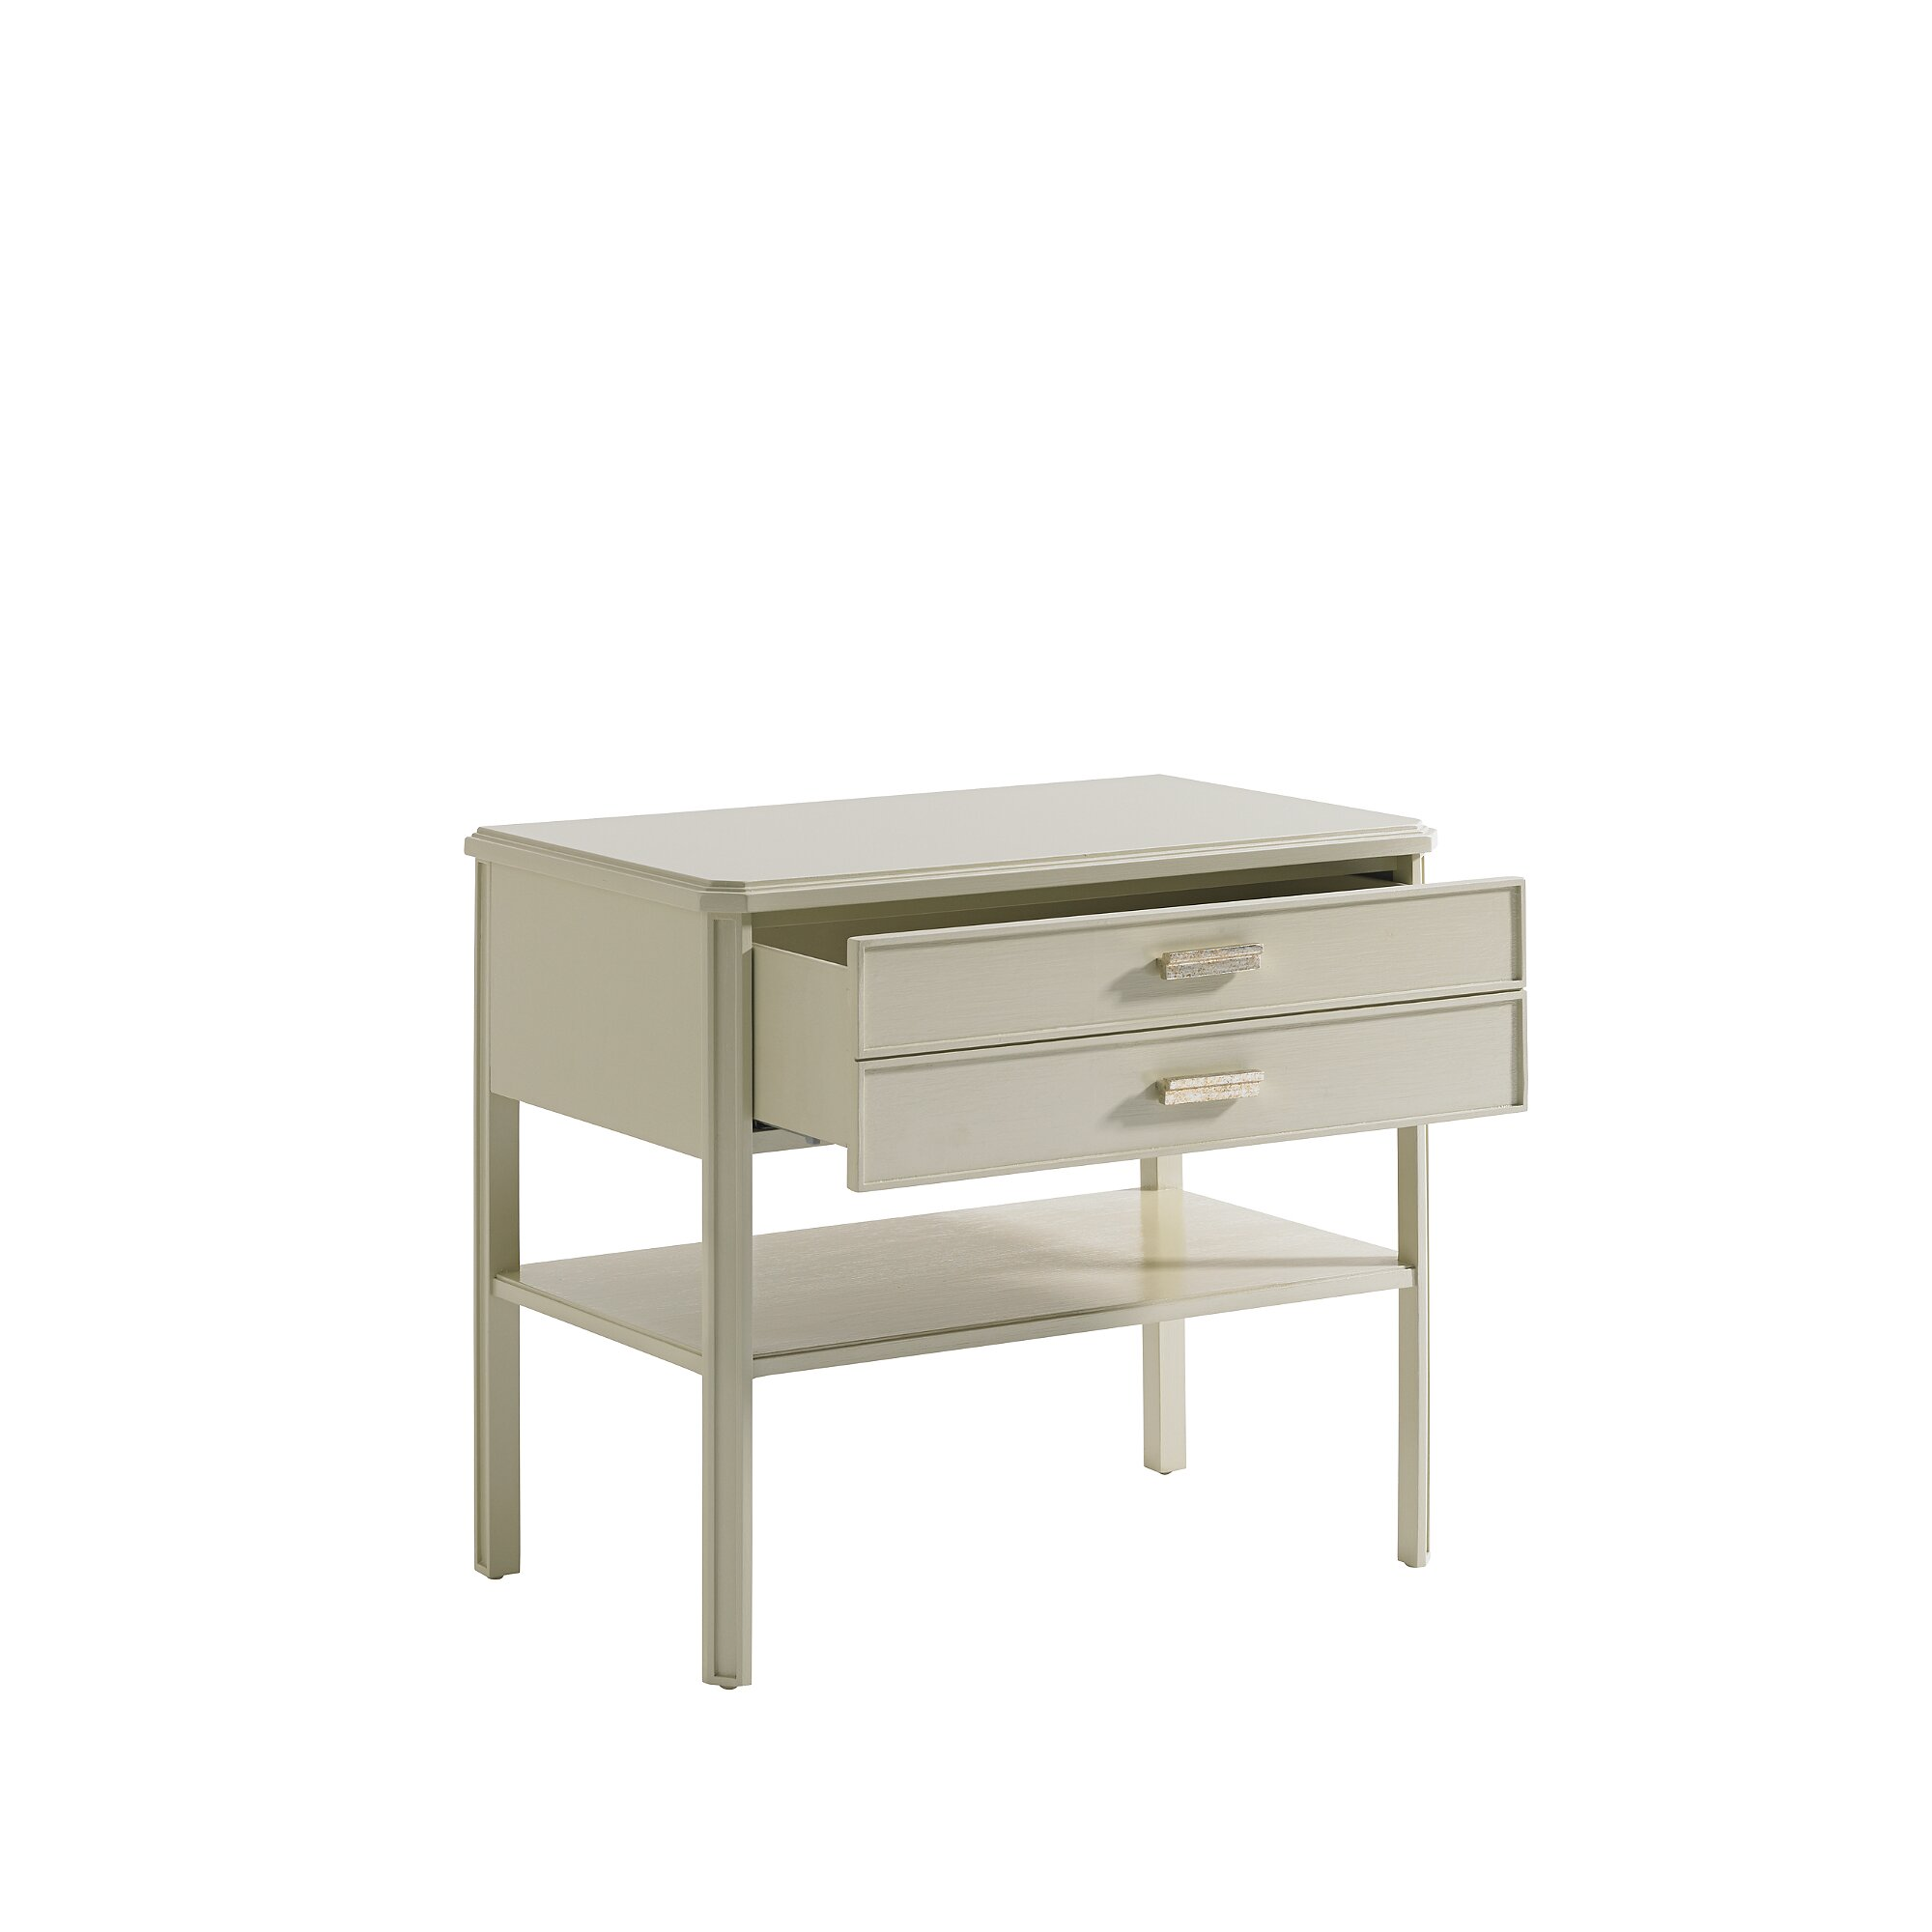 Stanley crestaire suthbridge 1 drawer nightstand reviews for H furniture ww chair